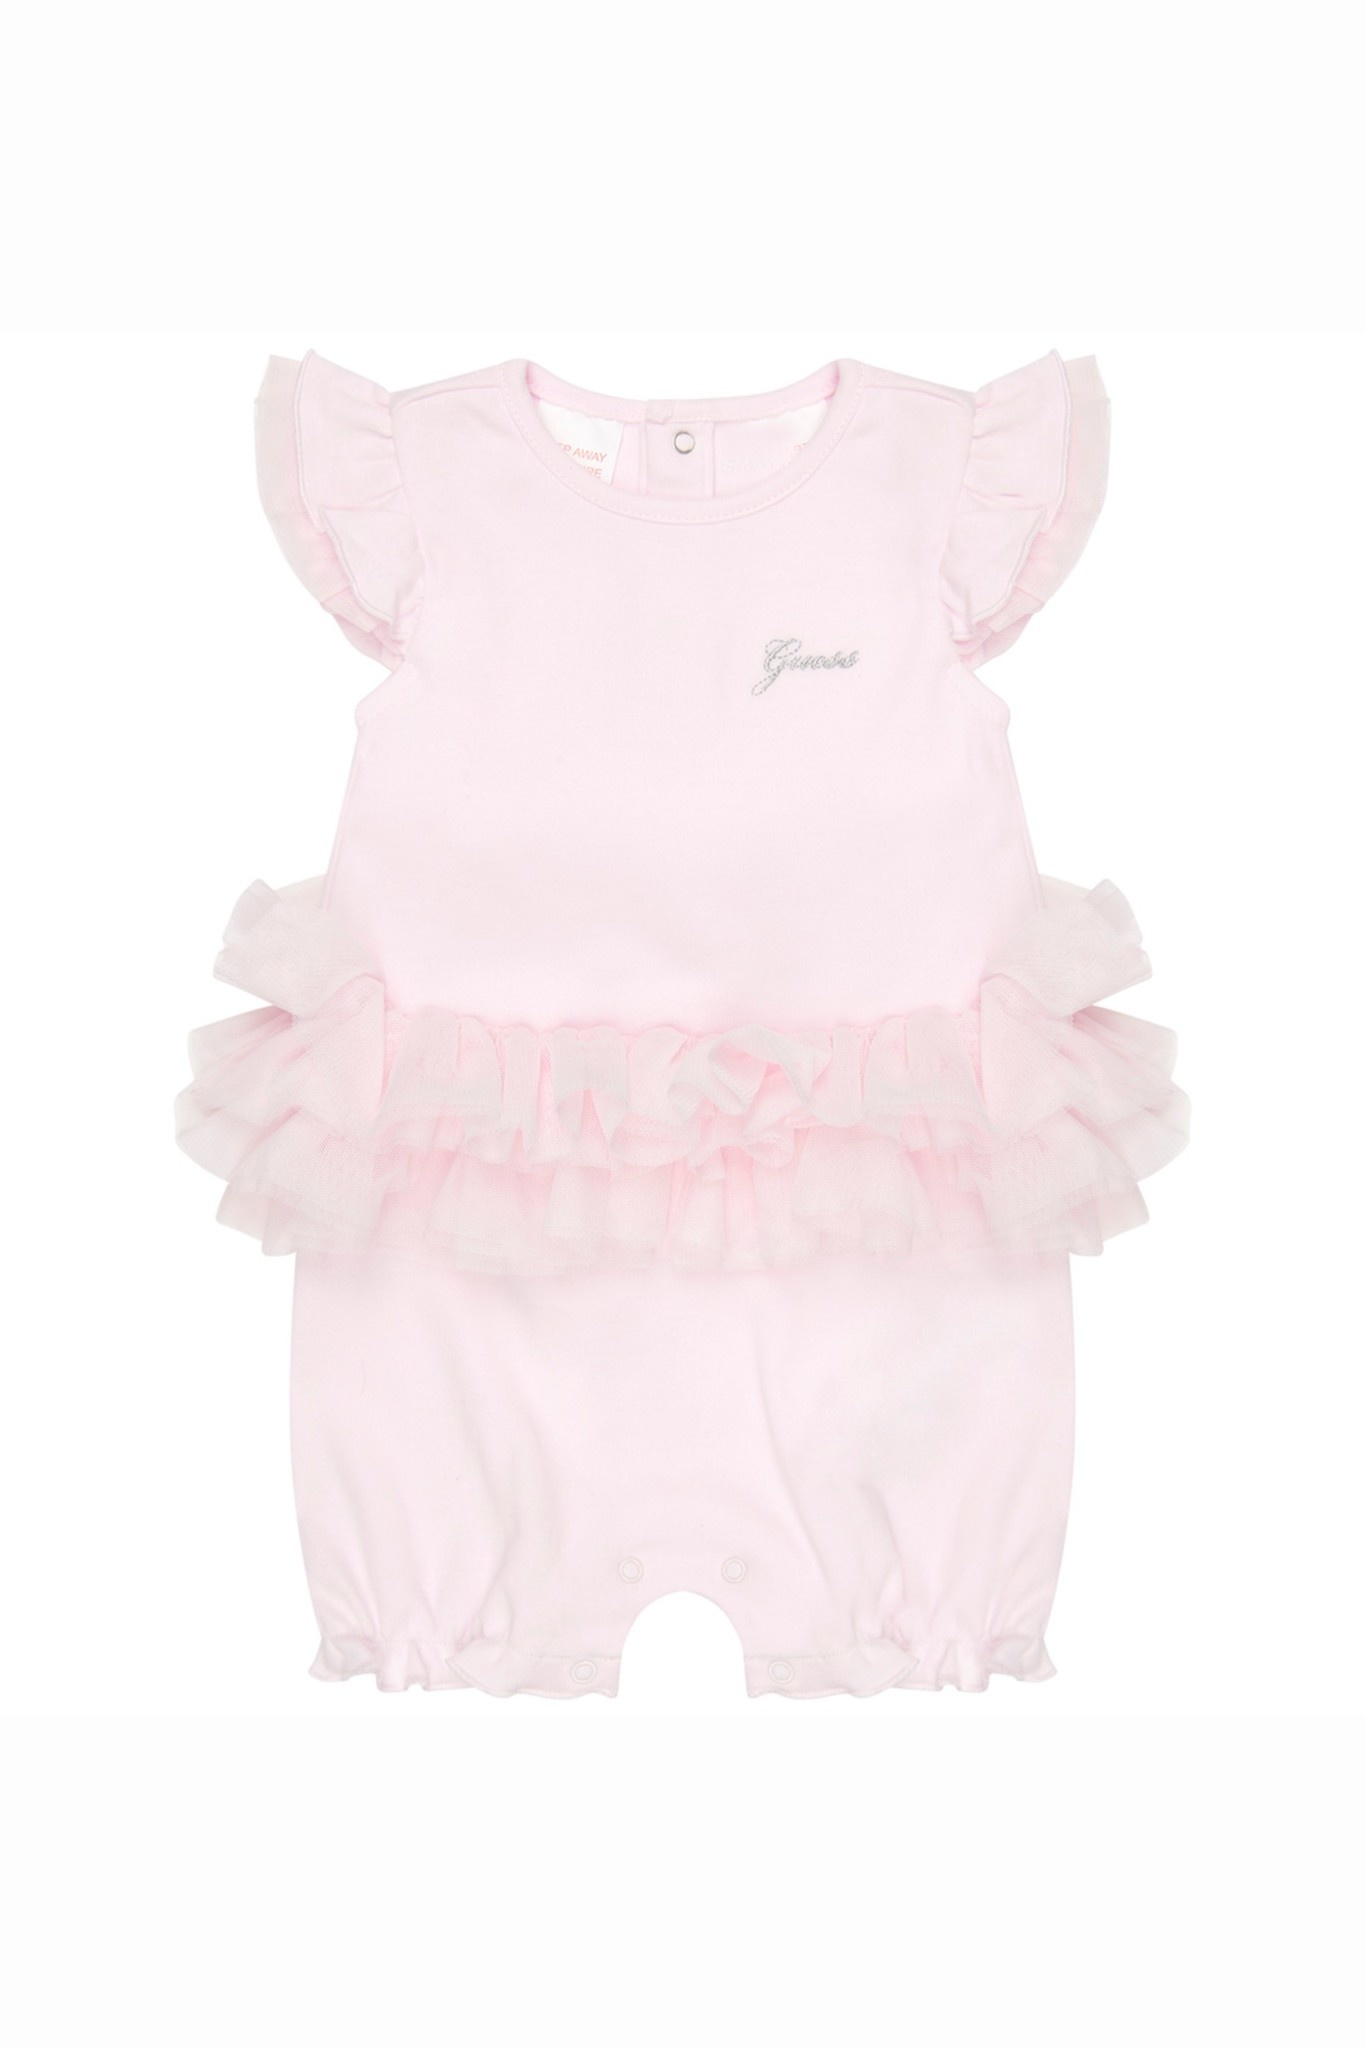 Guess GUESS Baby Girls Pink Cotton Shortie Romper S21